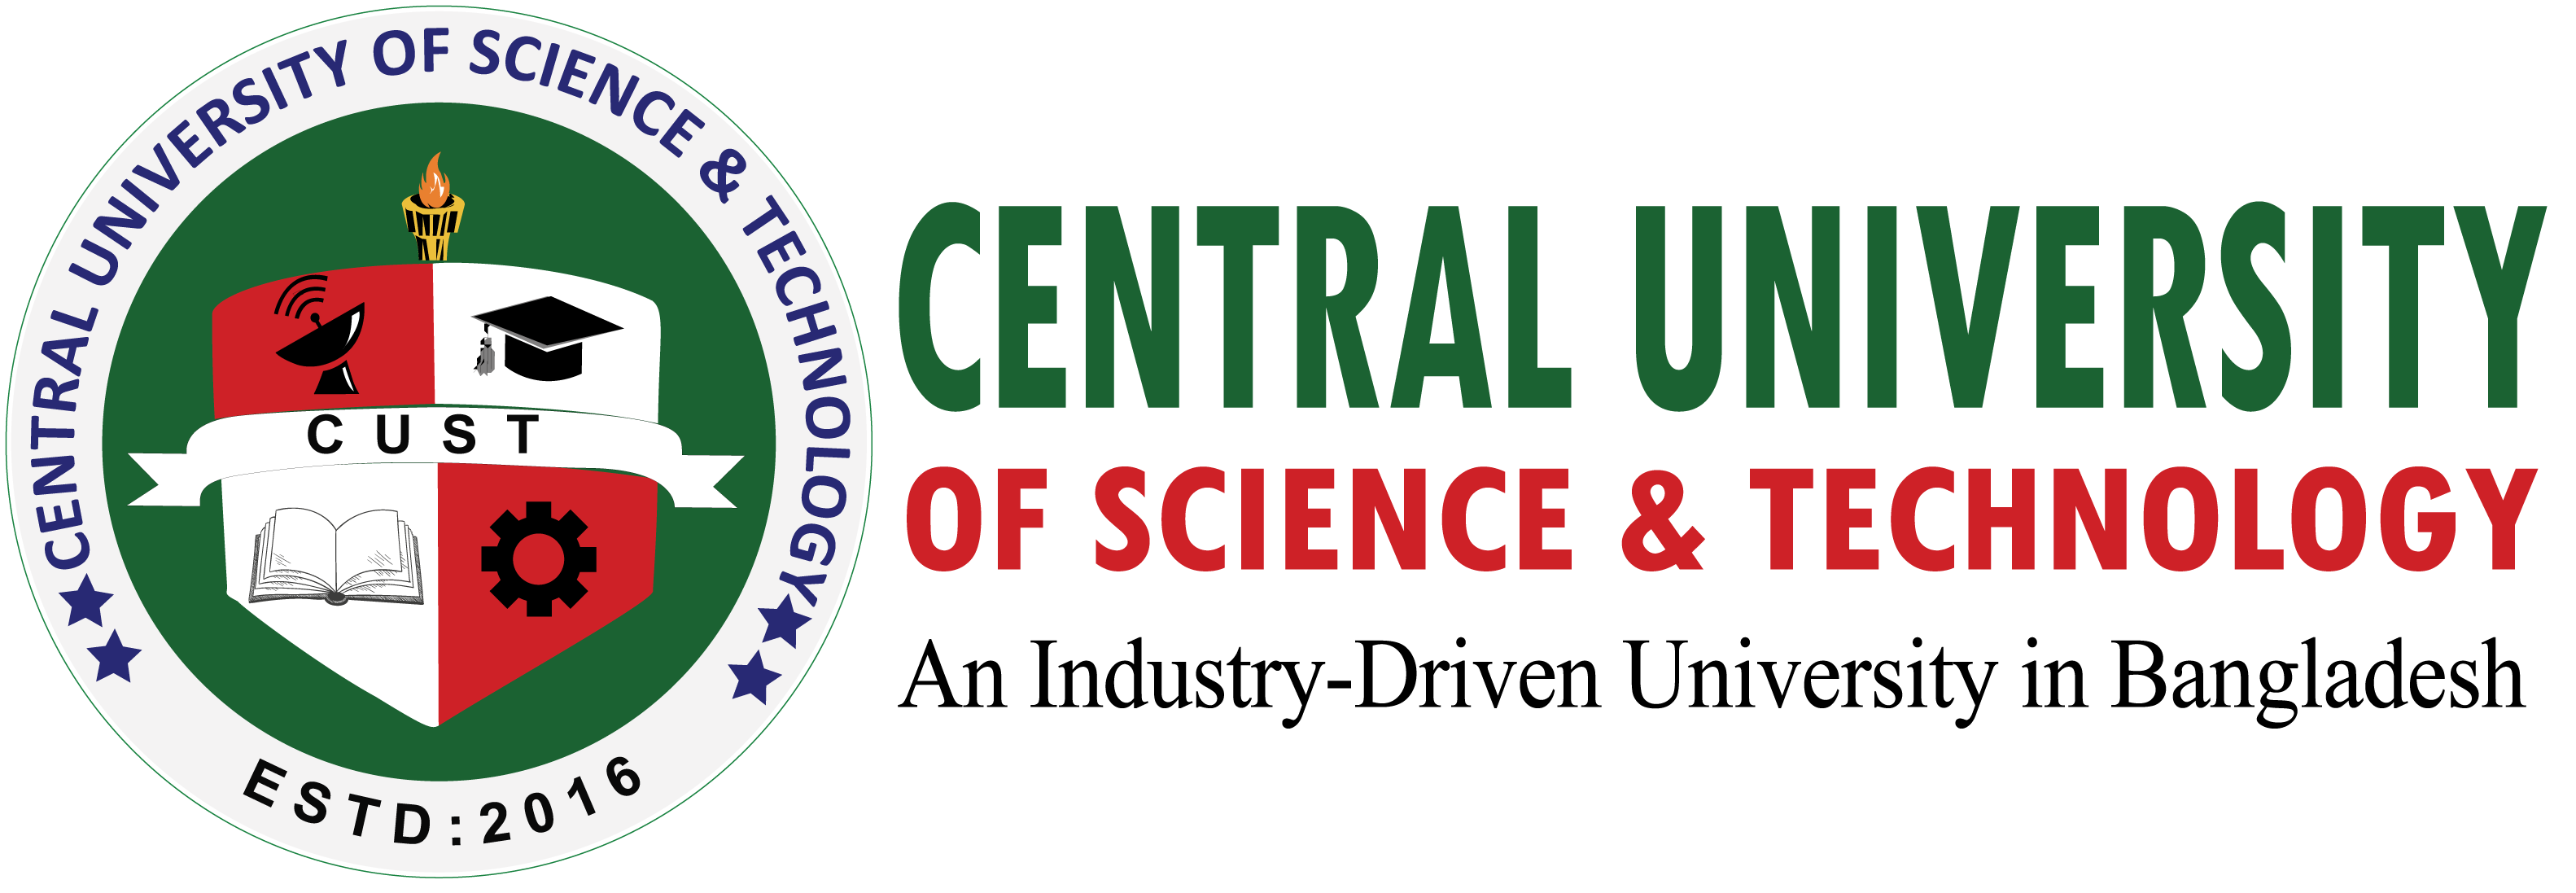 ILLC & WPLC - Central University of Science & Technology